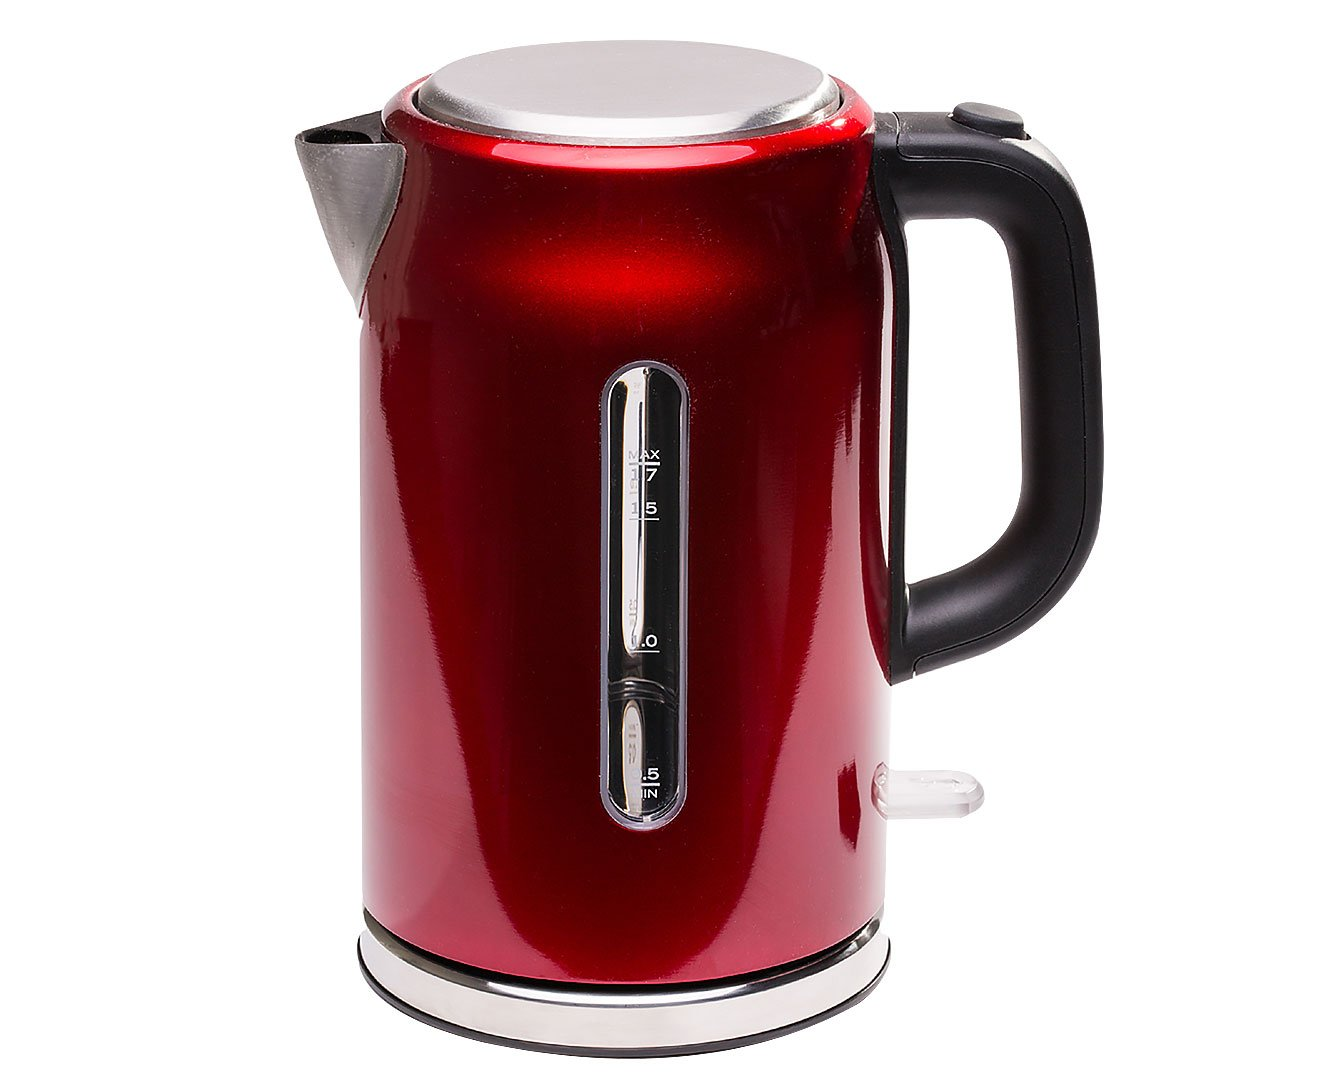 Westinghouse 1.7L Kettle Pearl Red